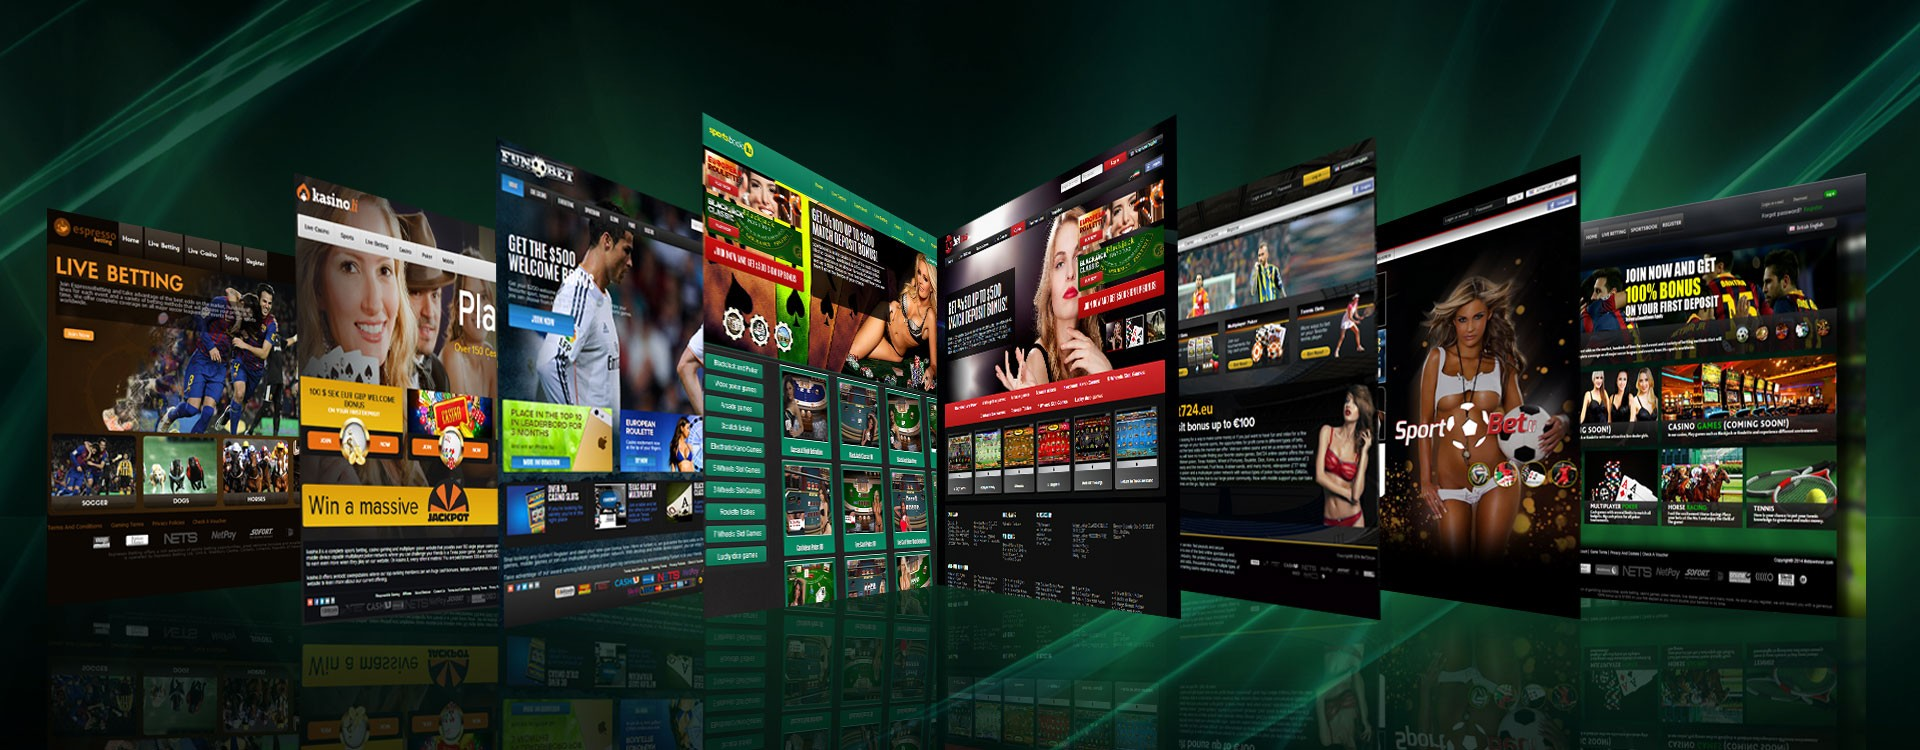 Top ways to play betting through live streaming